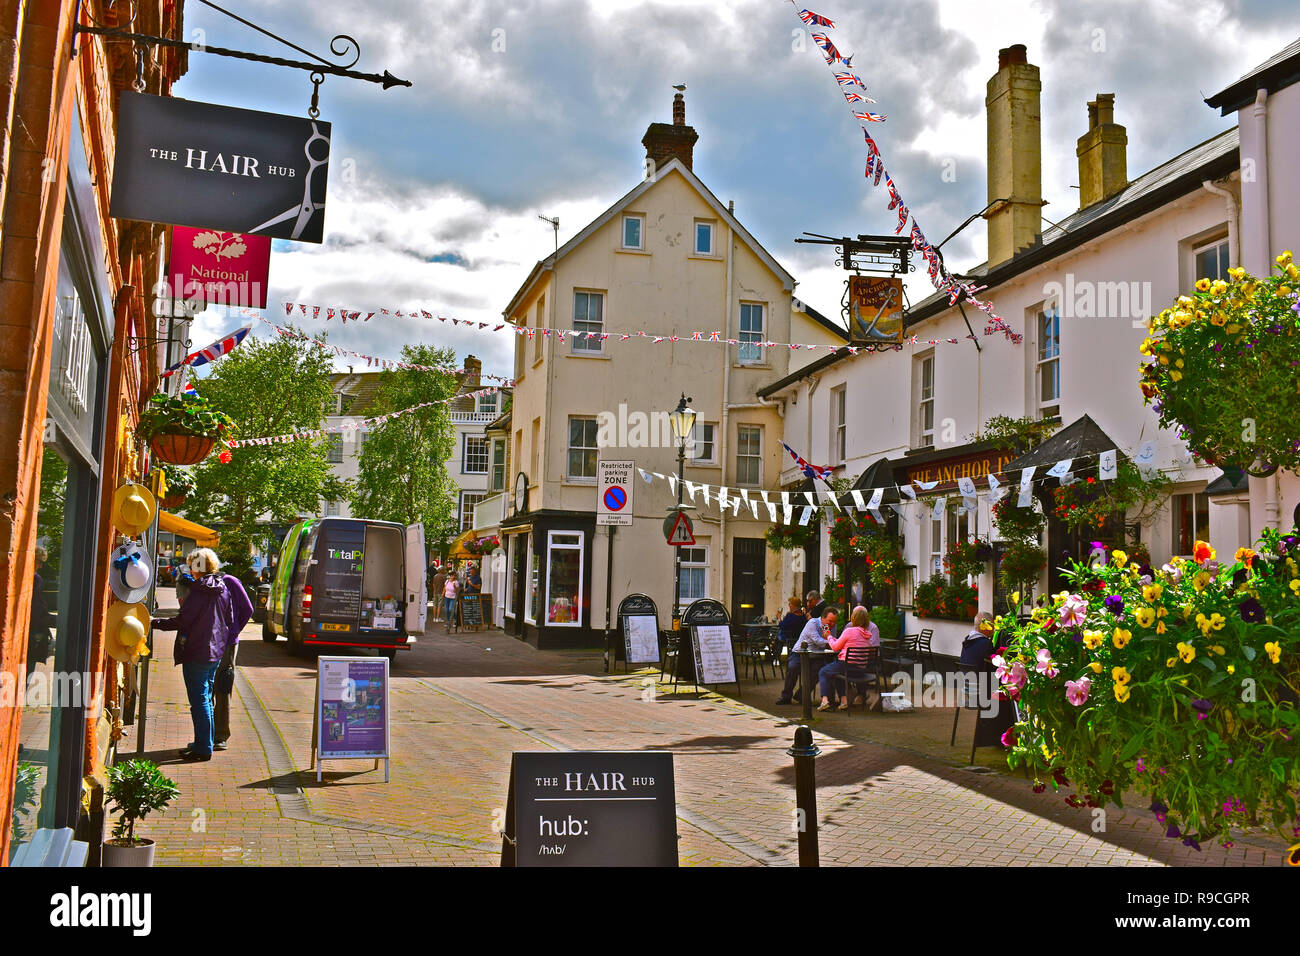 The town centre of Sidmouth with colourful bunting, hanging baskets,  and leafy trees. People enjoying a relaxing drink outside the Anchor Inn pub. - Stock Image